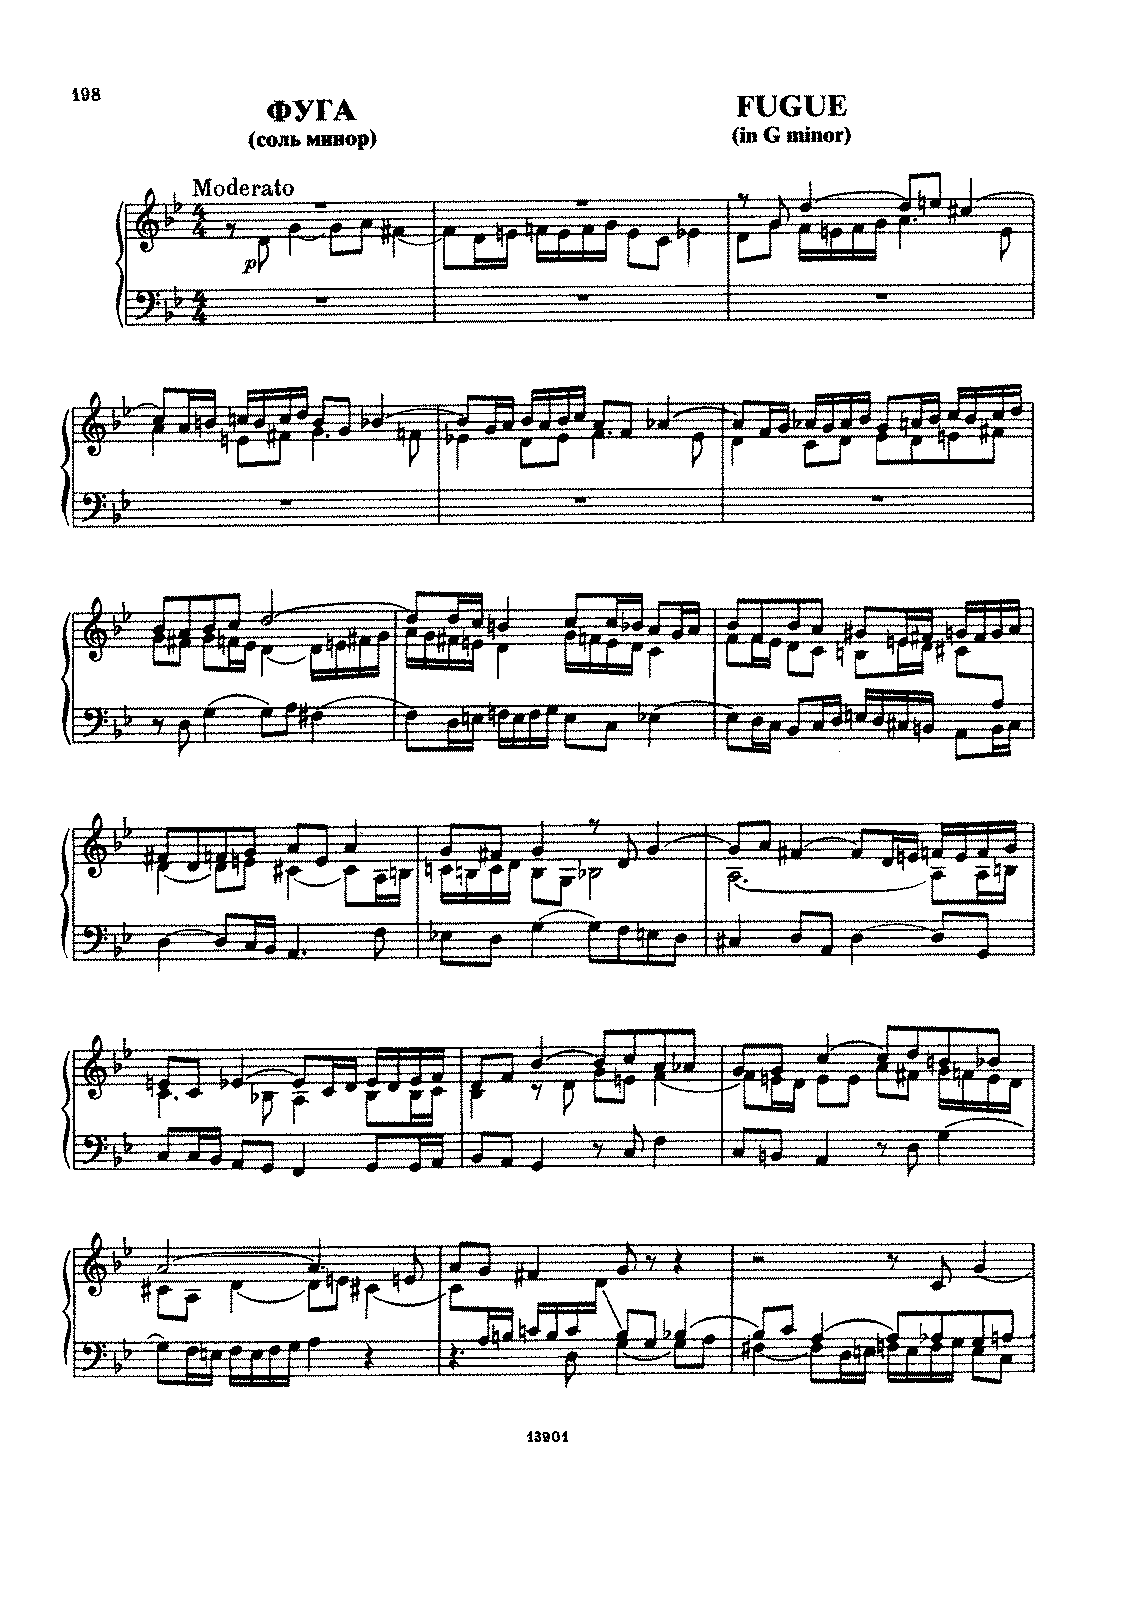 PMLP139587-Rimsky-Korsakov--Fugue -in-G-minor--Ed-Muzyka.pdf